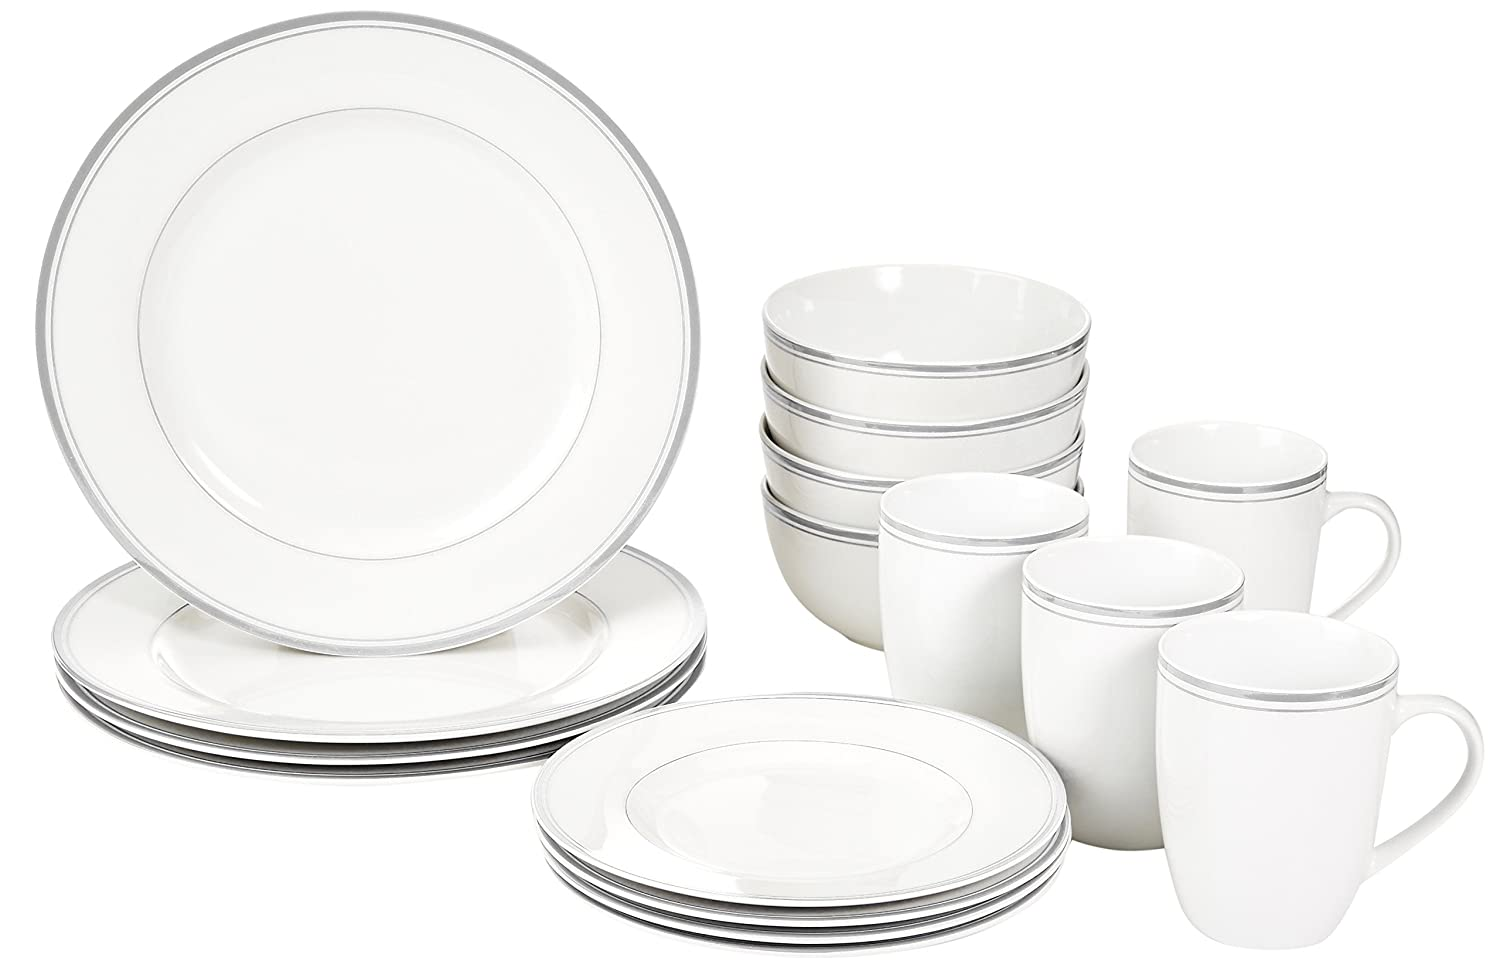 Amazon.com AmazonBasics 16-Piece Cafe Stripe Dinnerware Set Service for 4 - Grey Kitchen u0026 Dining  sc 1 st  Amazon.com & Amazon.com: AmazonBasics 16-Piece Cafe Stripe Dinnerware Set ...